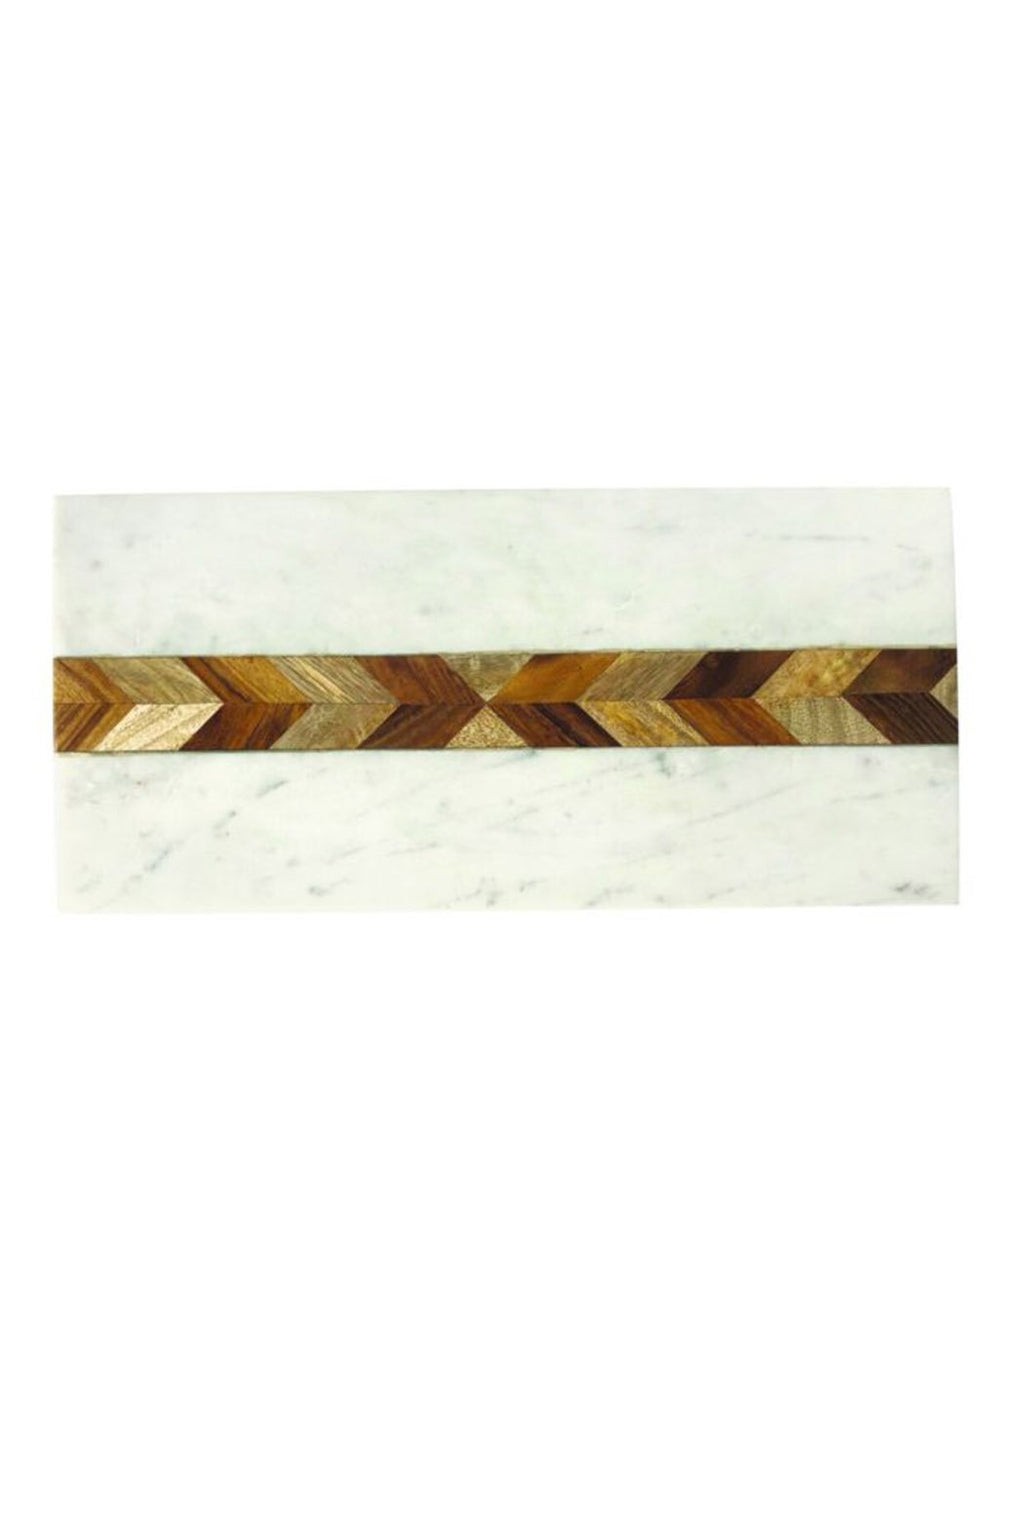 Be Home White Marble + Wood Mosaic Board